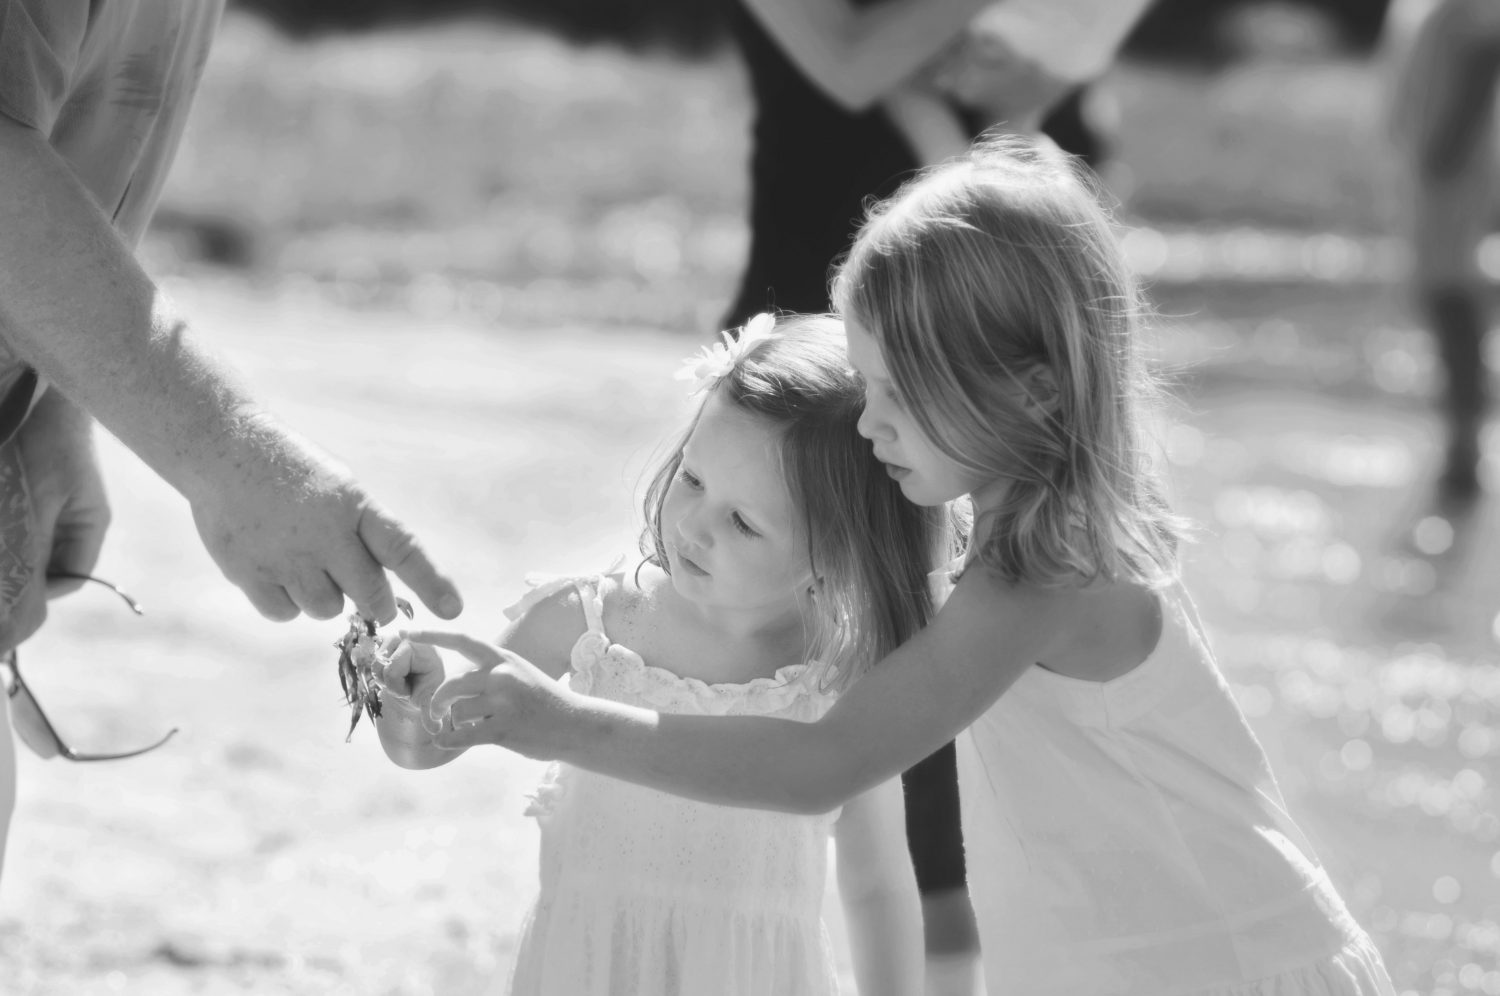 black and white photograph of two little girls looking at a small crab